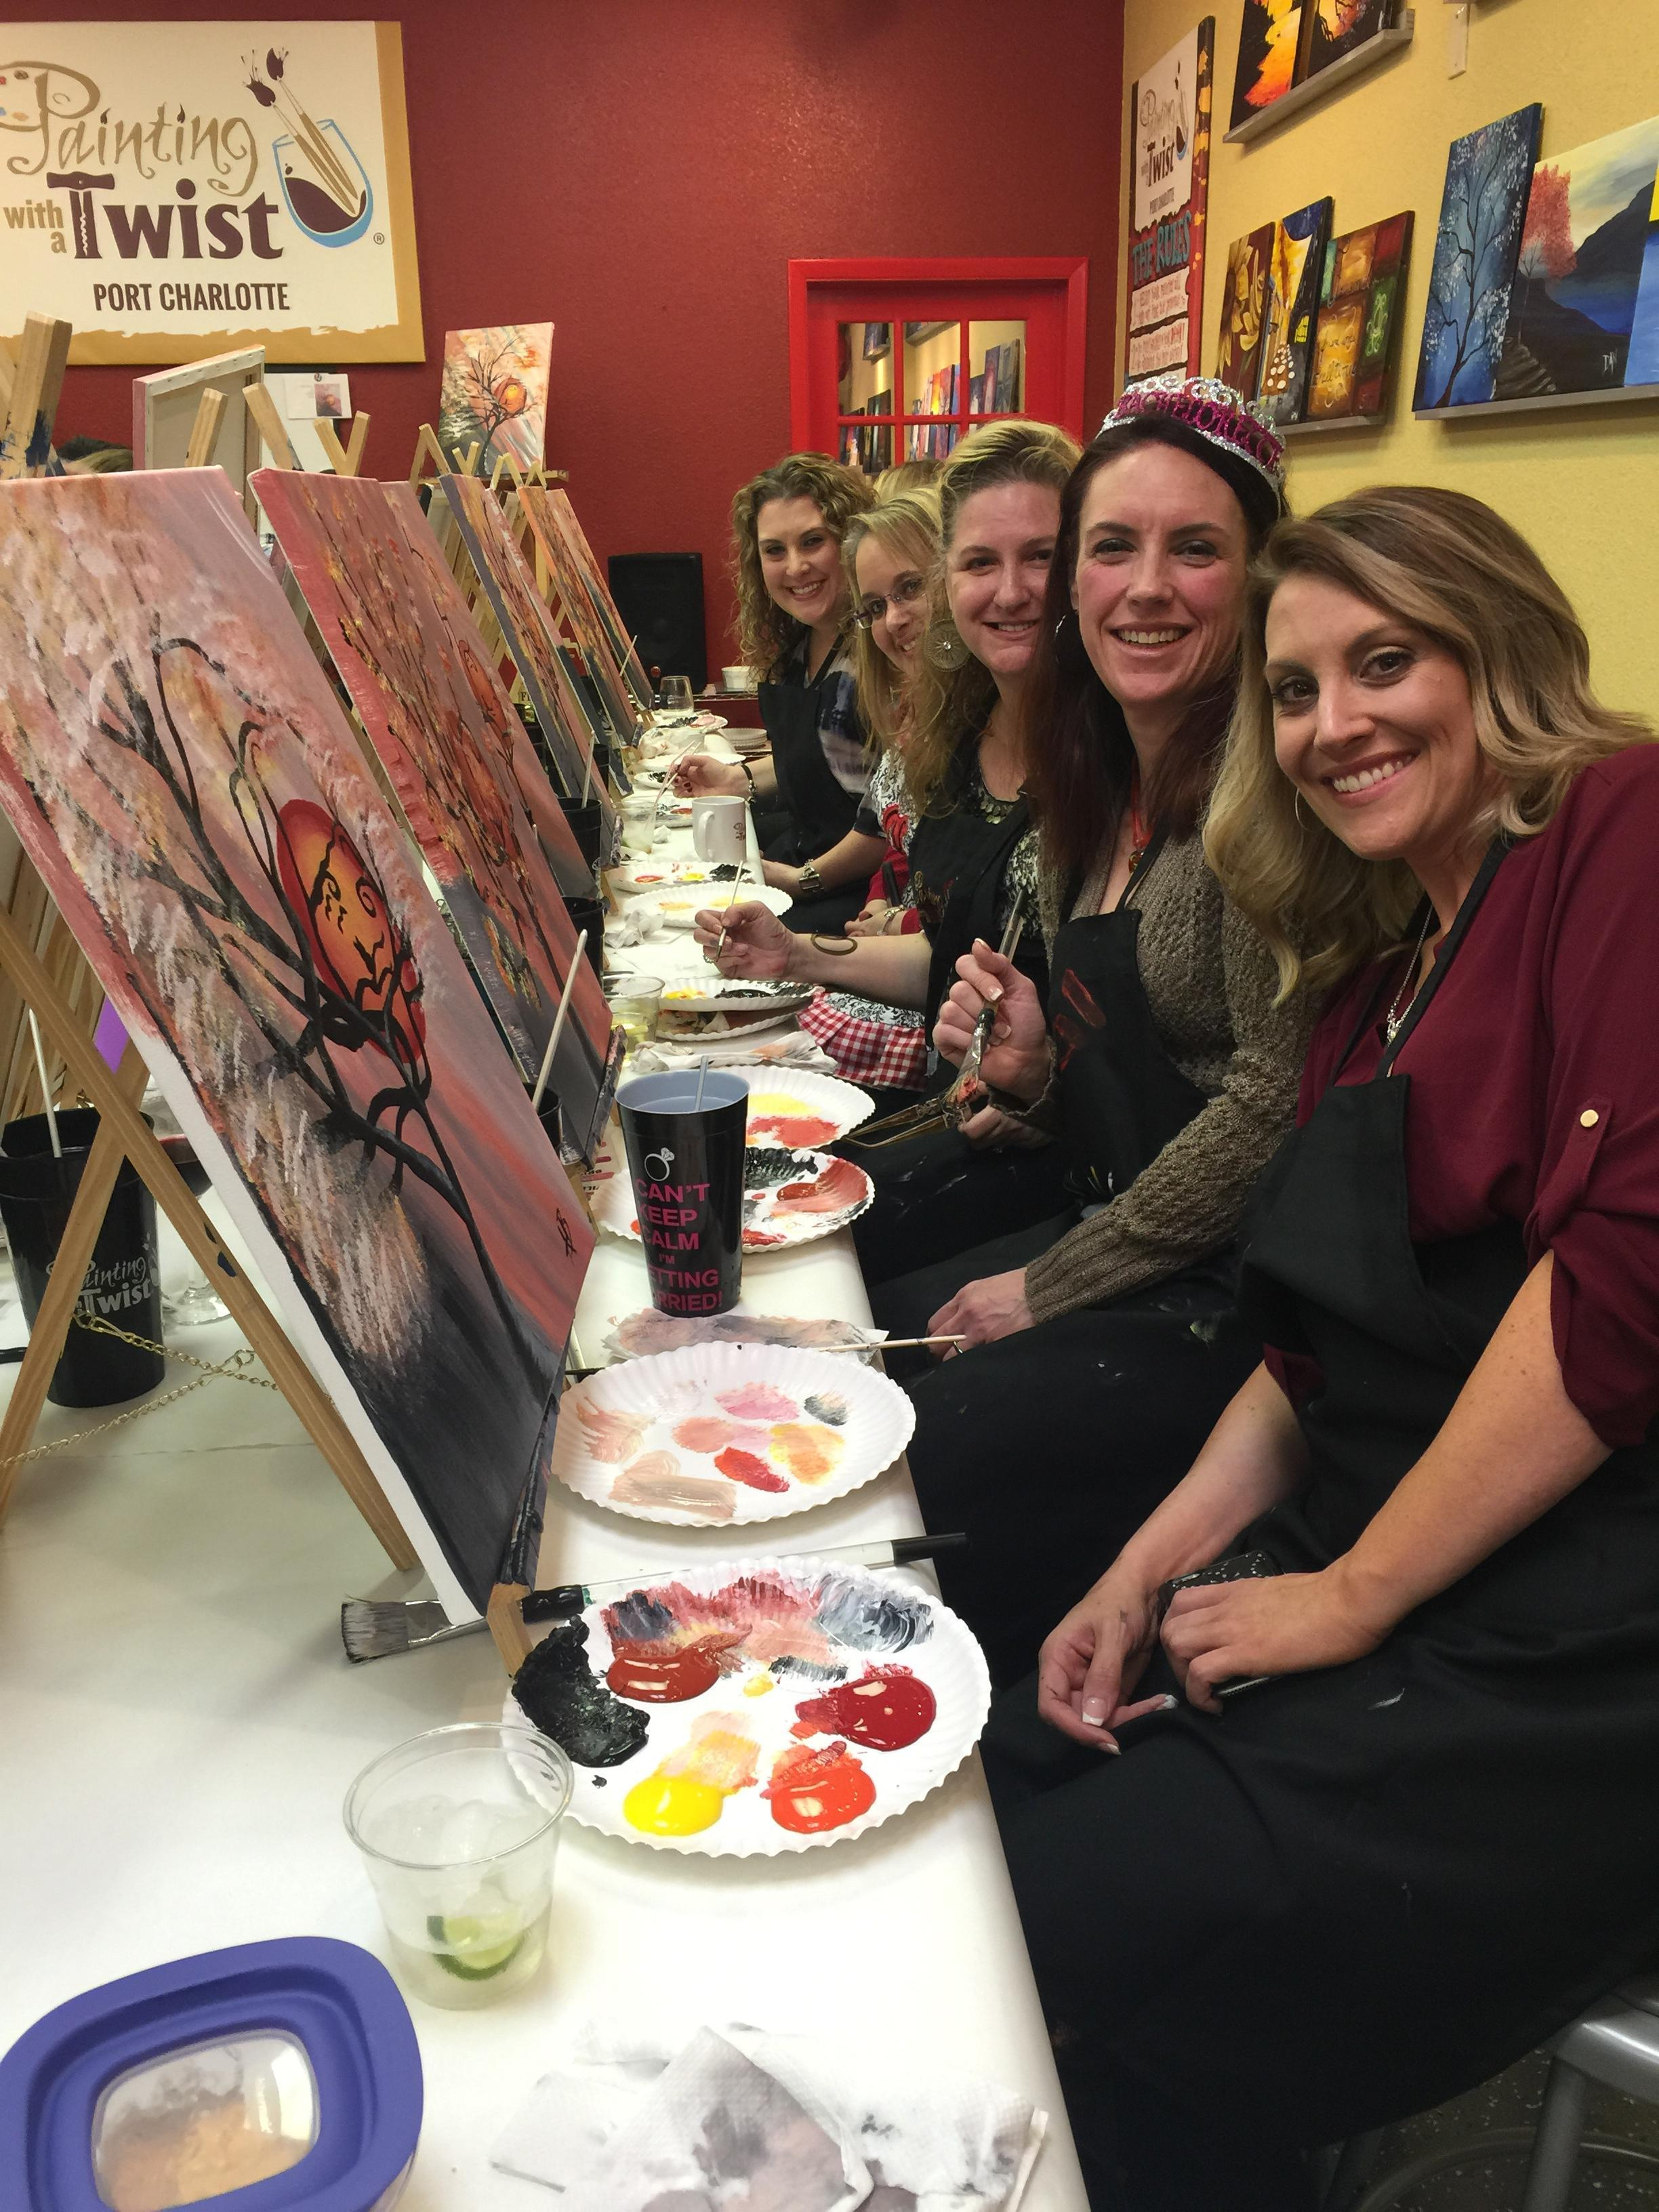 Port charlotte fl painting with a twist find painting for Painting with a twist charlotte nc